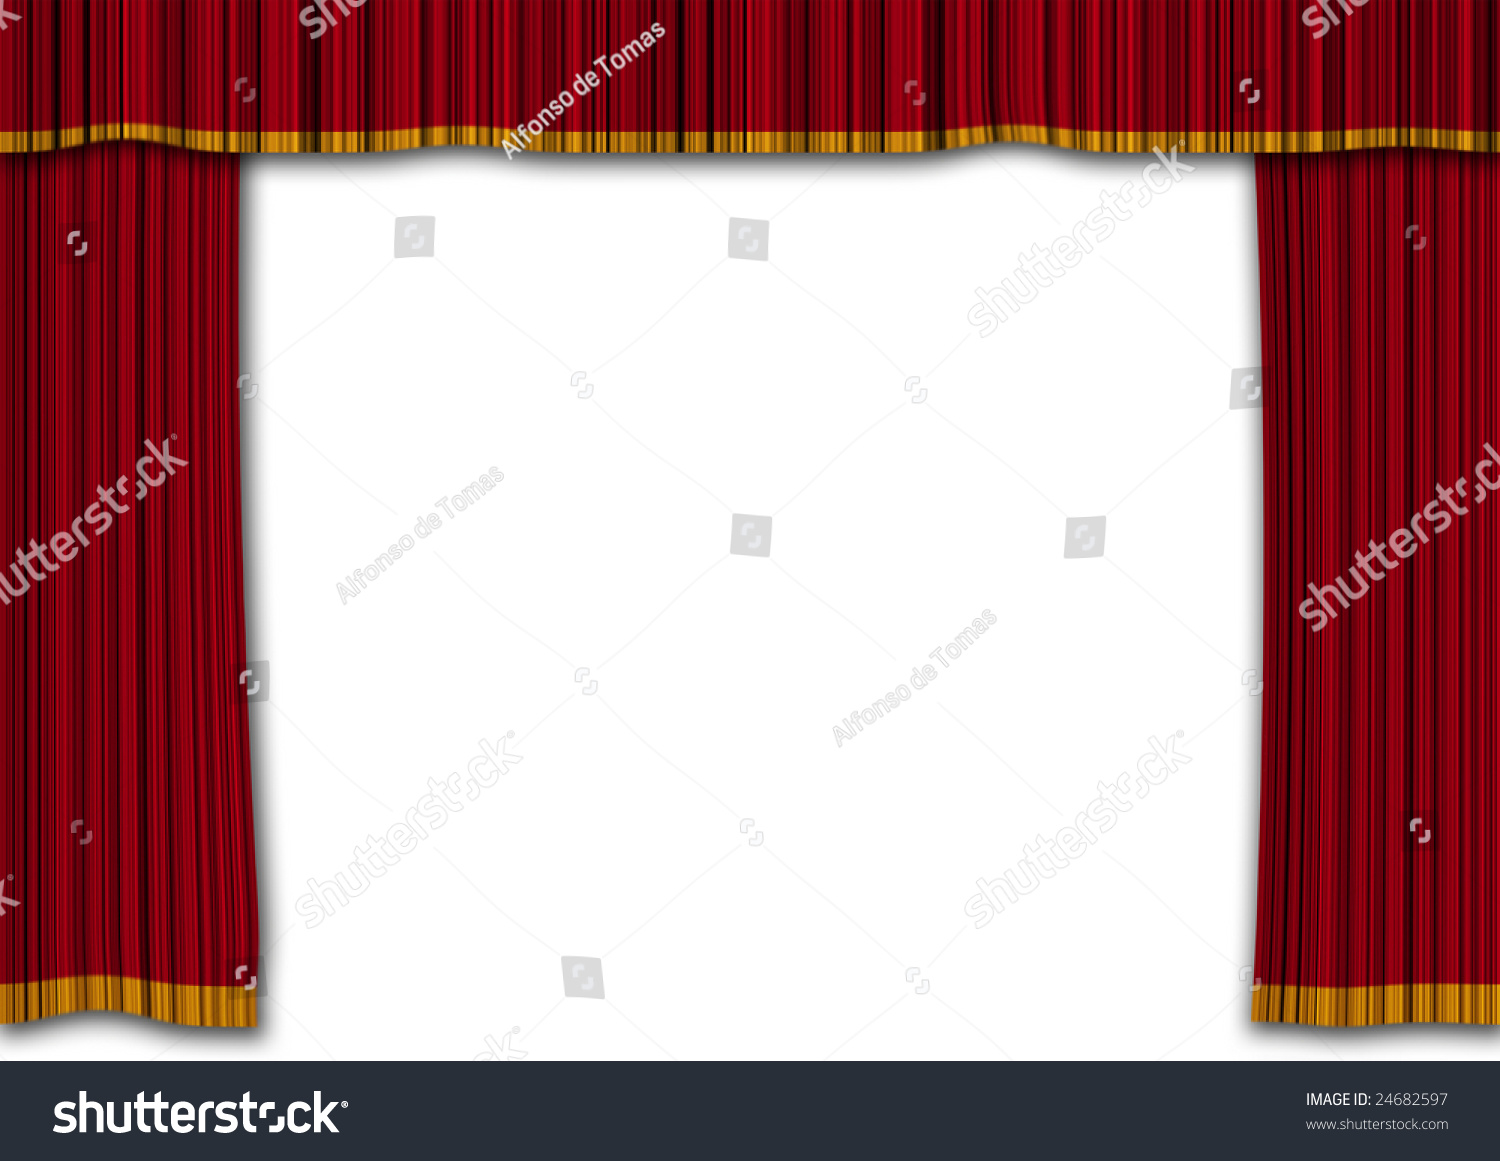 Realistic Red Curtains Show Entertainment Concept Stock ...